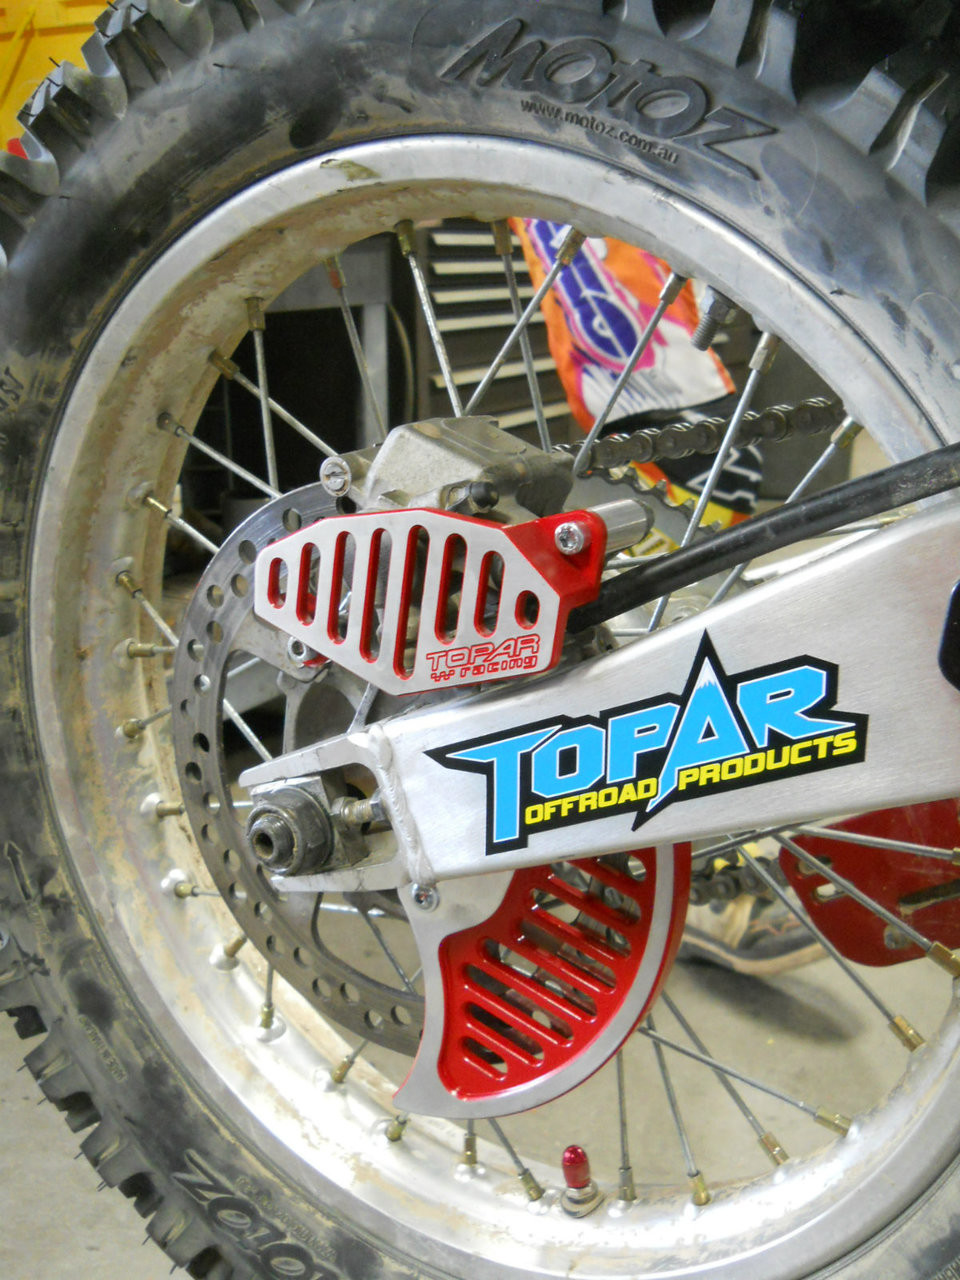 Topar Racing Rear Brake Caliper Guard for  2000-2007 XR650R (MOUNTS TO OEM BRACKET)  SHOWN WITH 101-102-HCR BRAKE DISC  ROTOR GUARD FIN